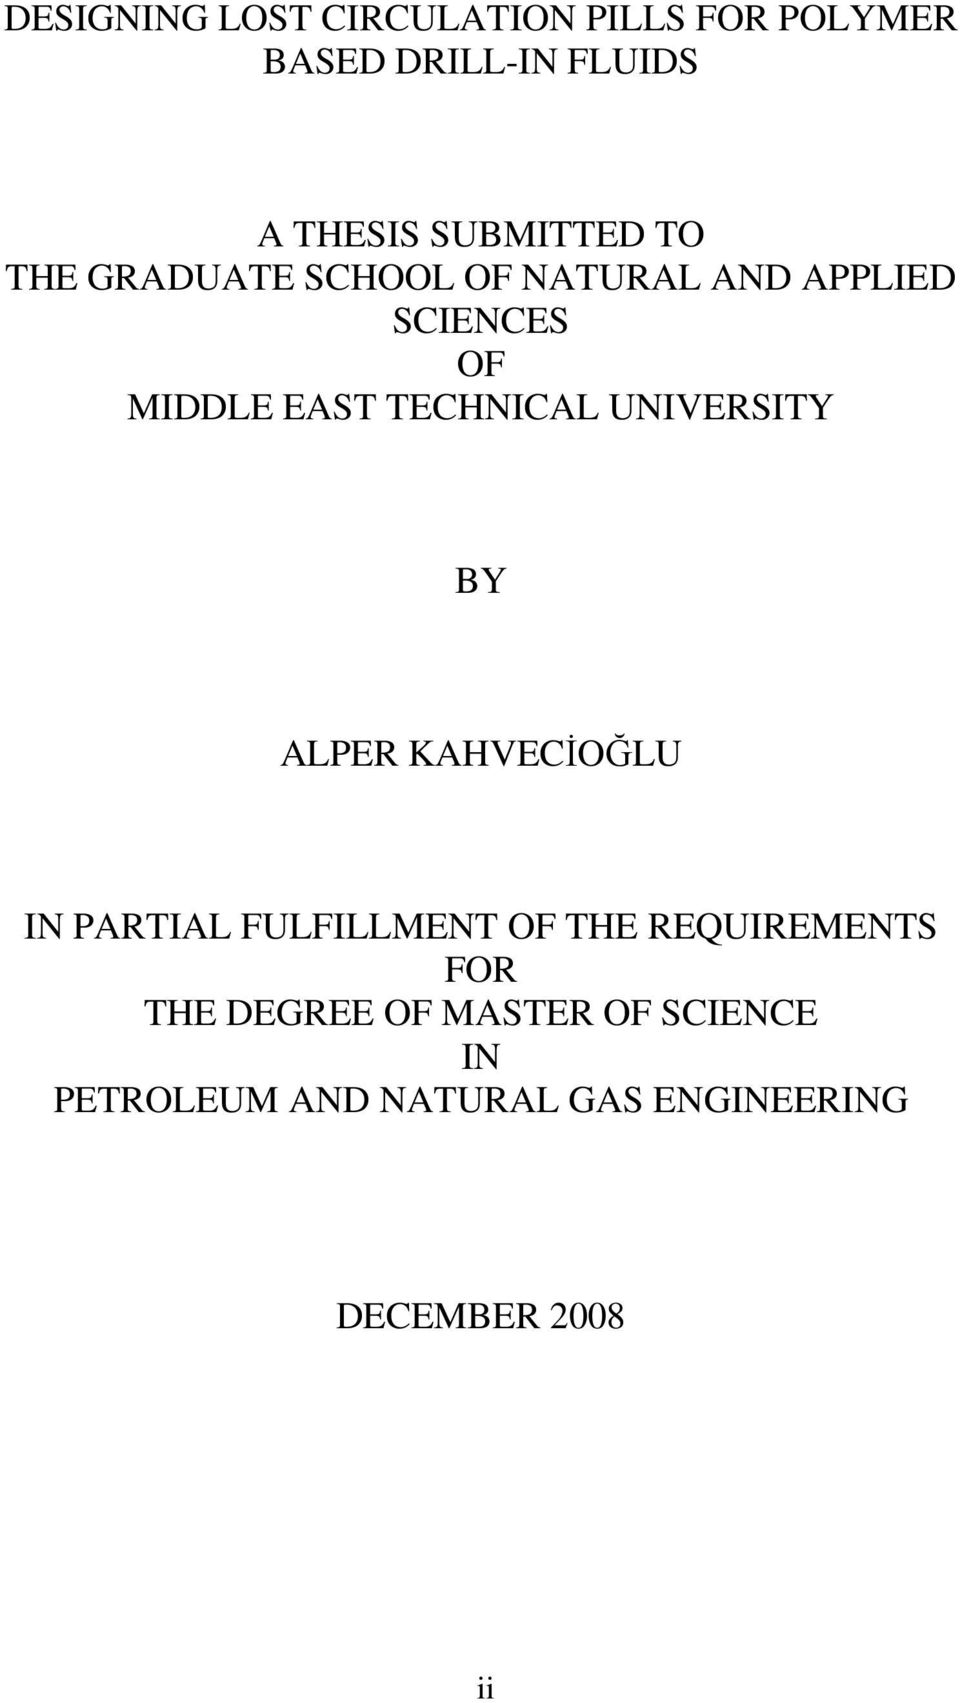 TECHNICAL UNIVERSITY BY ALPER KAHVECİOĞLU IN PARTIAL FULFILLMENT OF THE